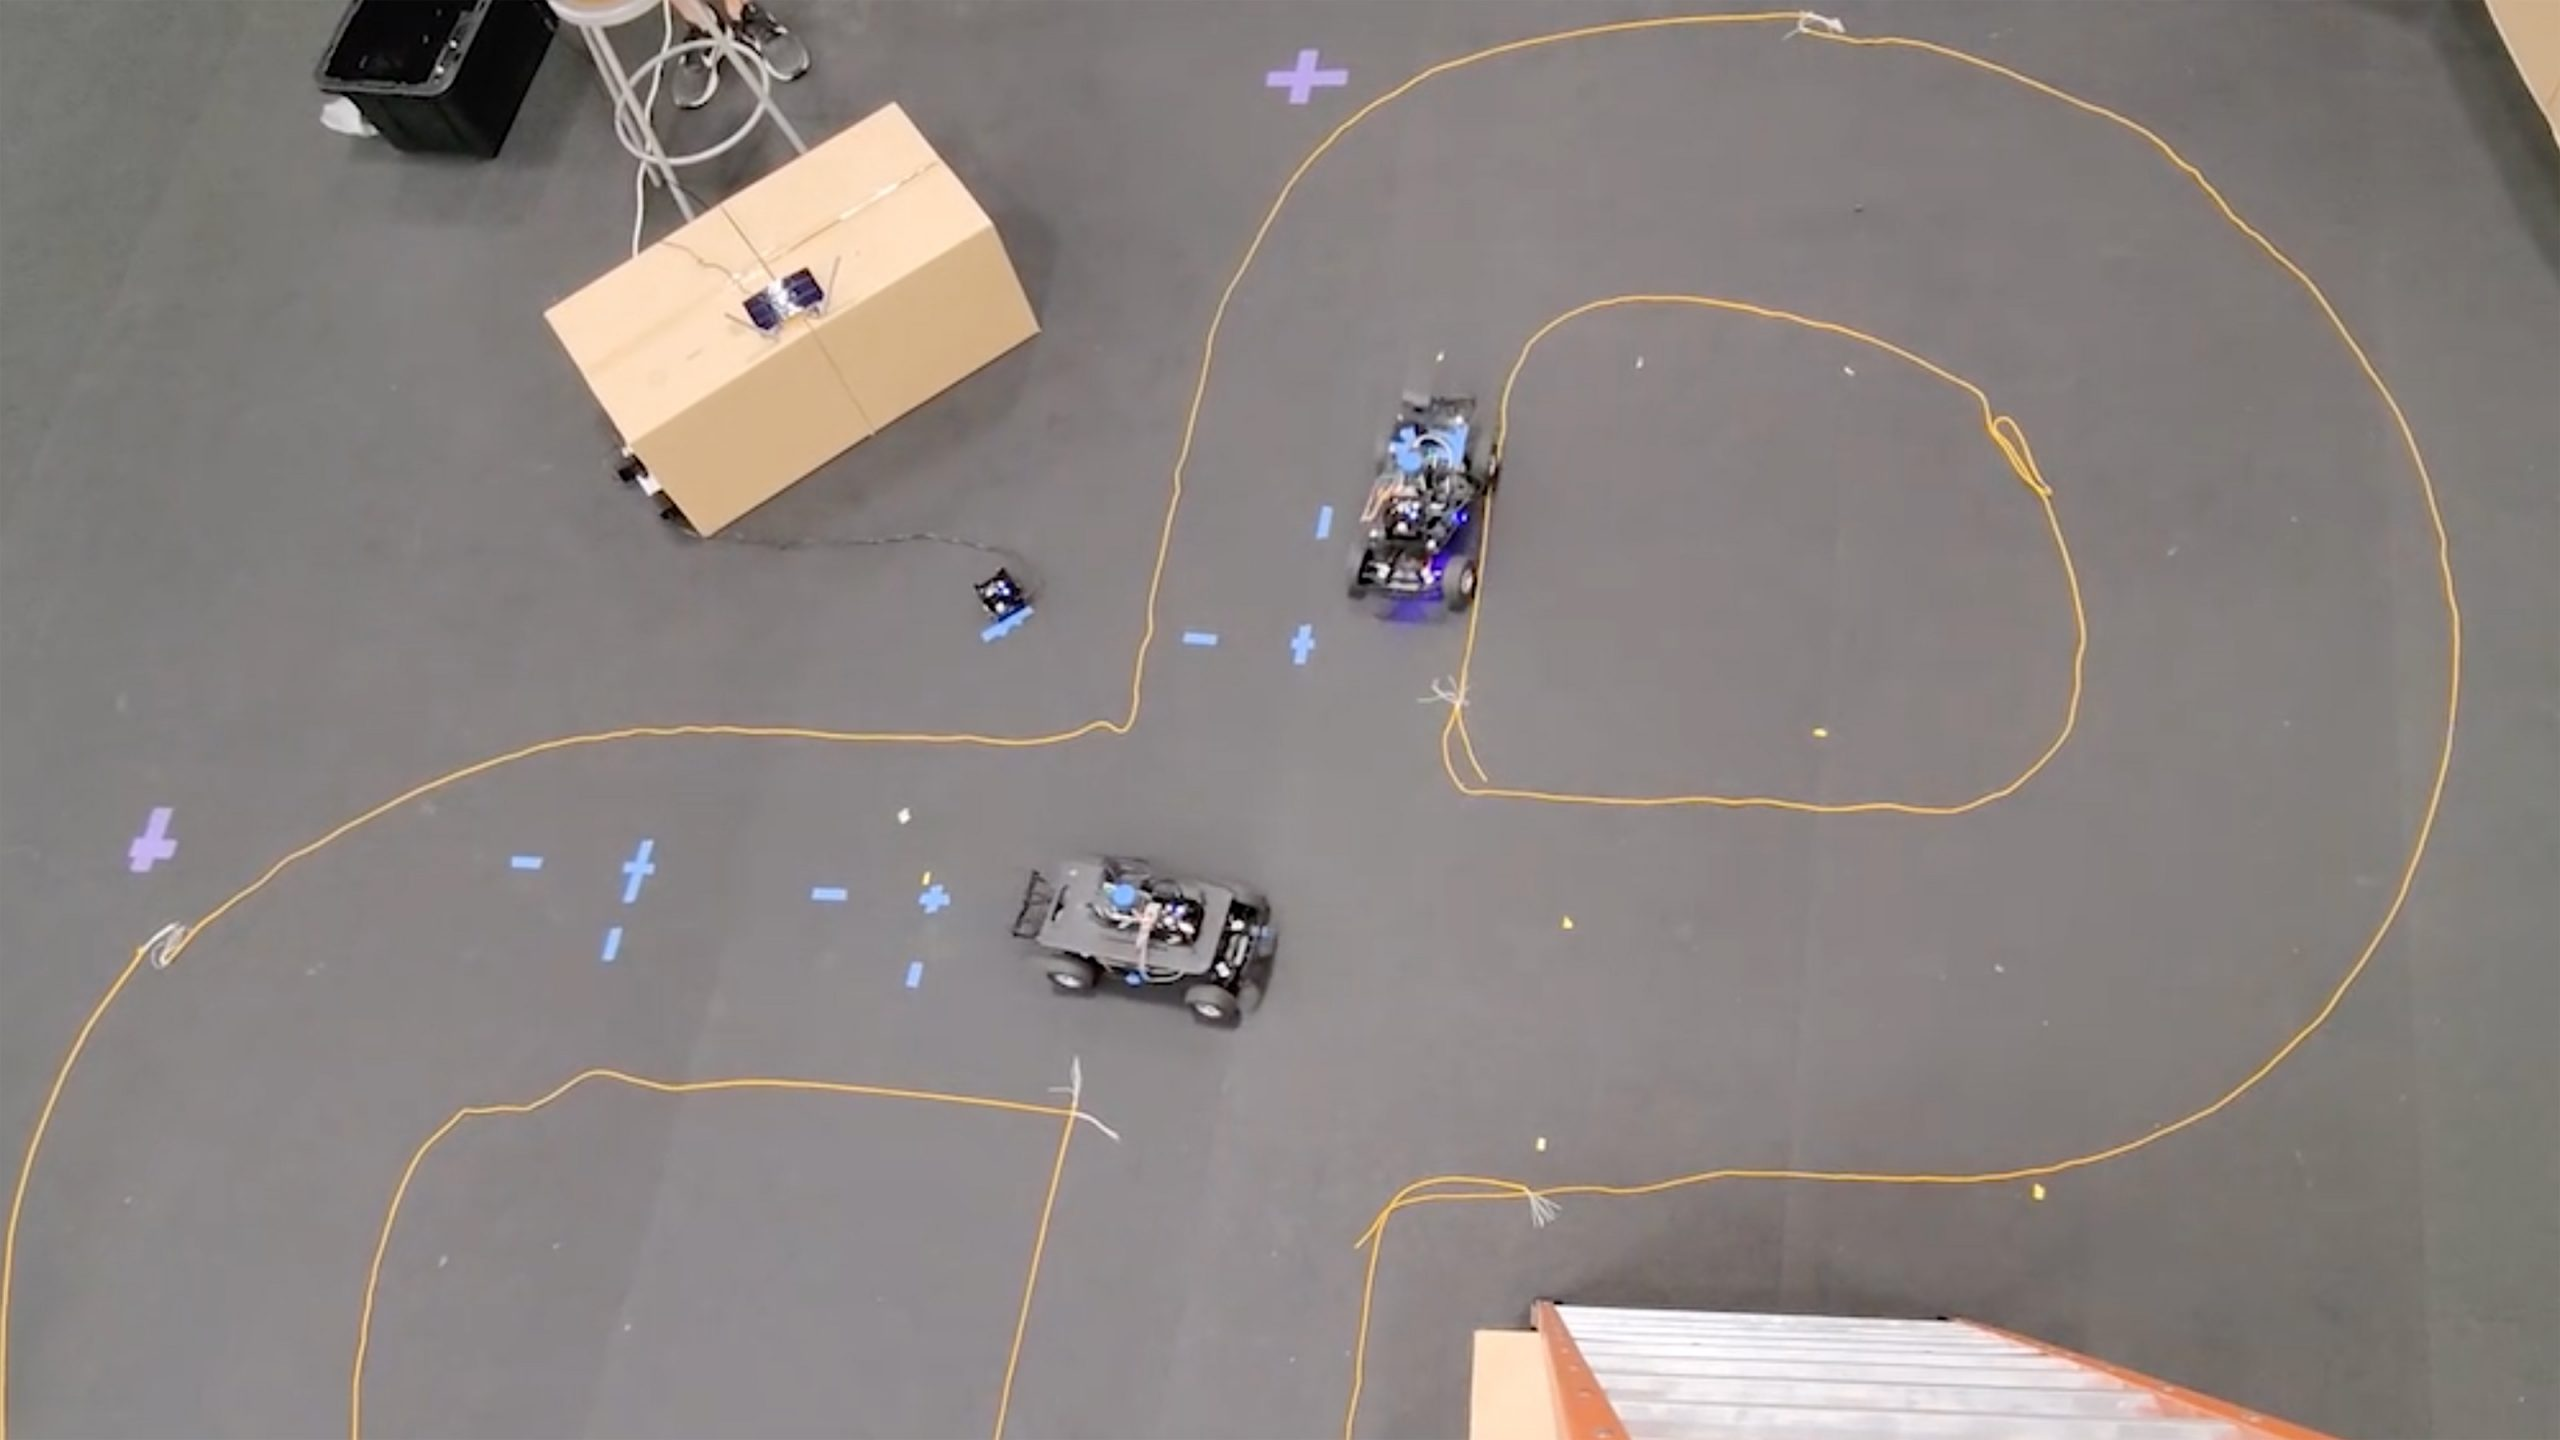 pair of autonmous vehicles driving in a figure-eight track